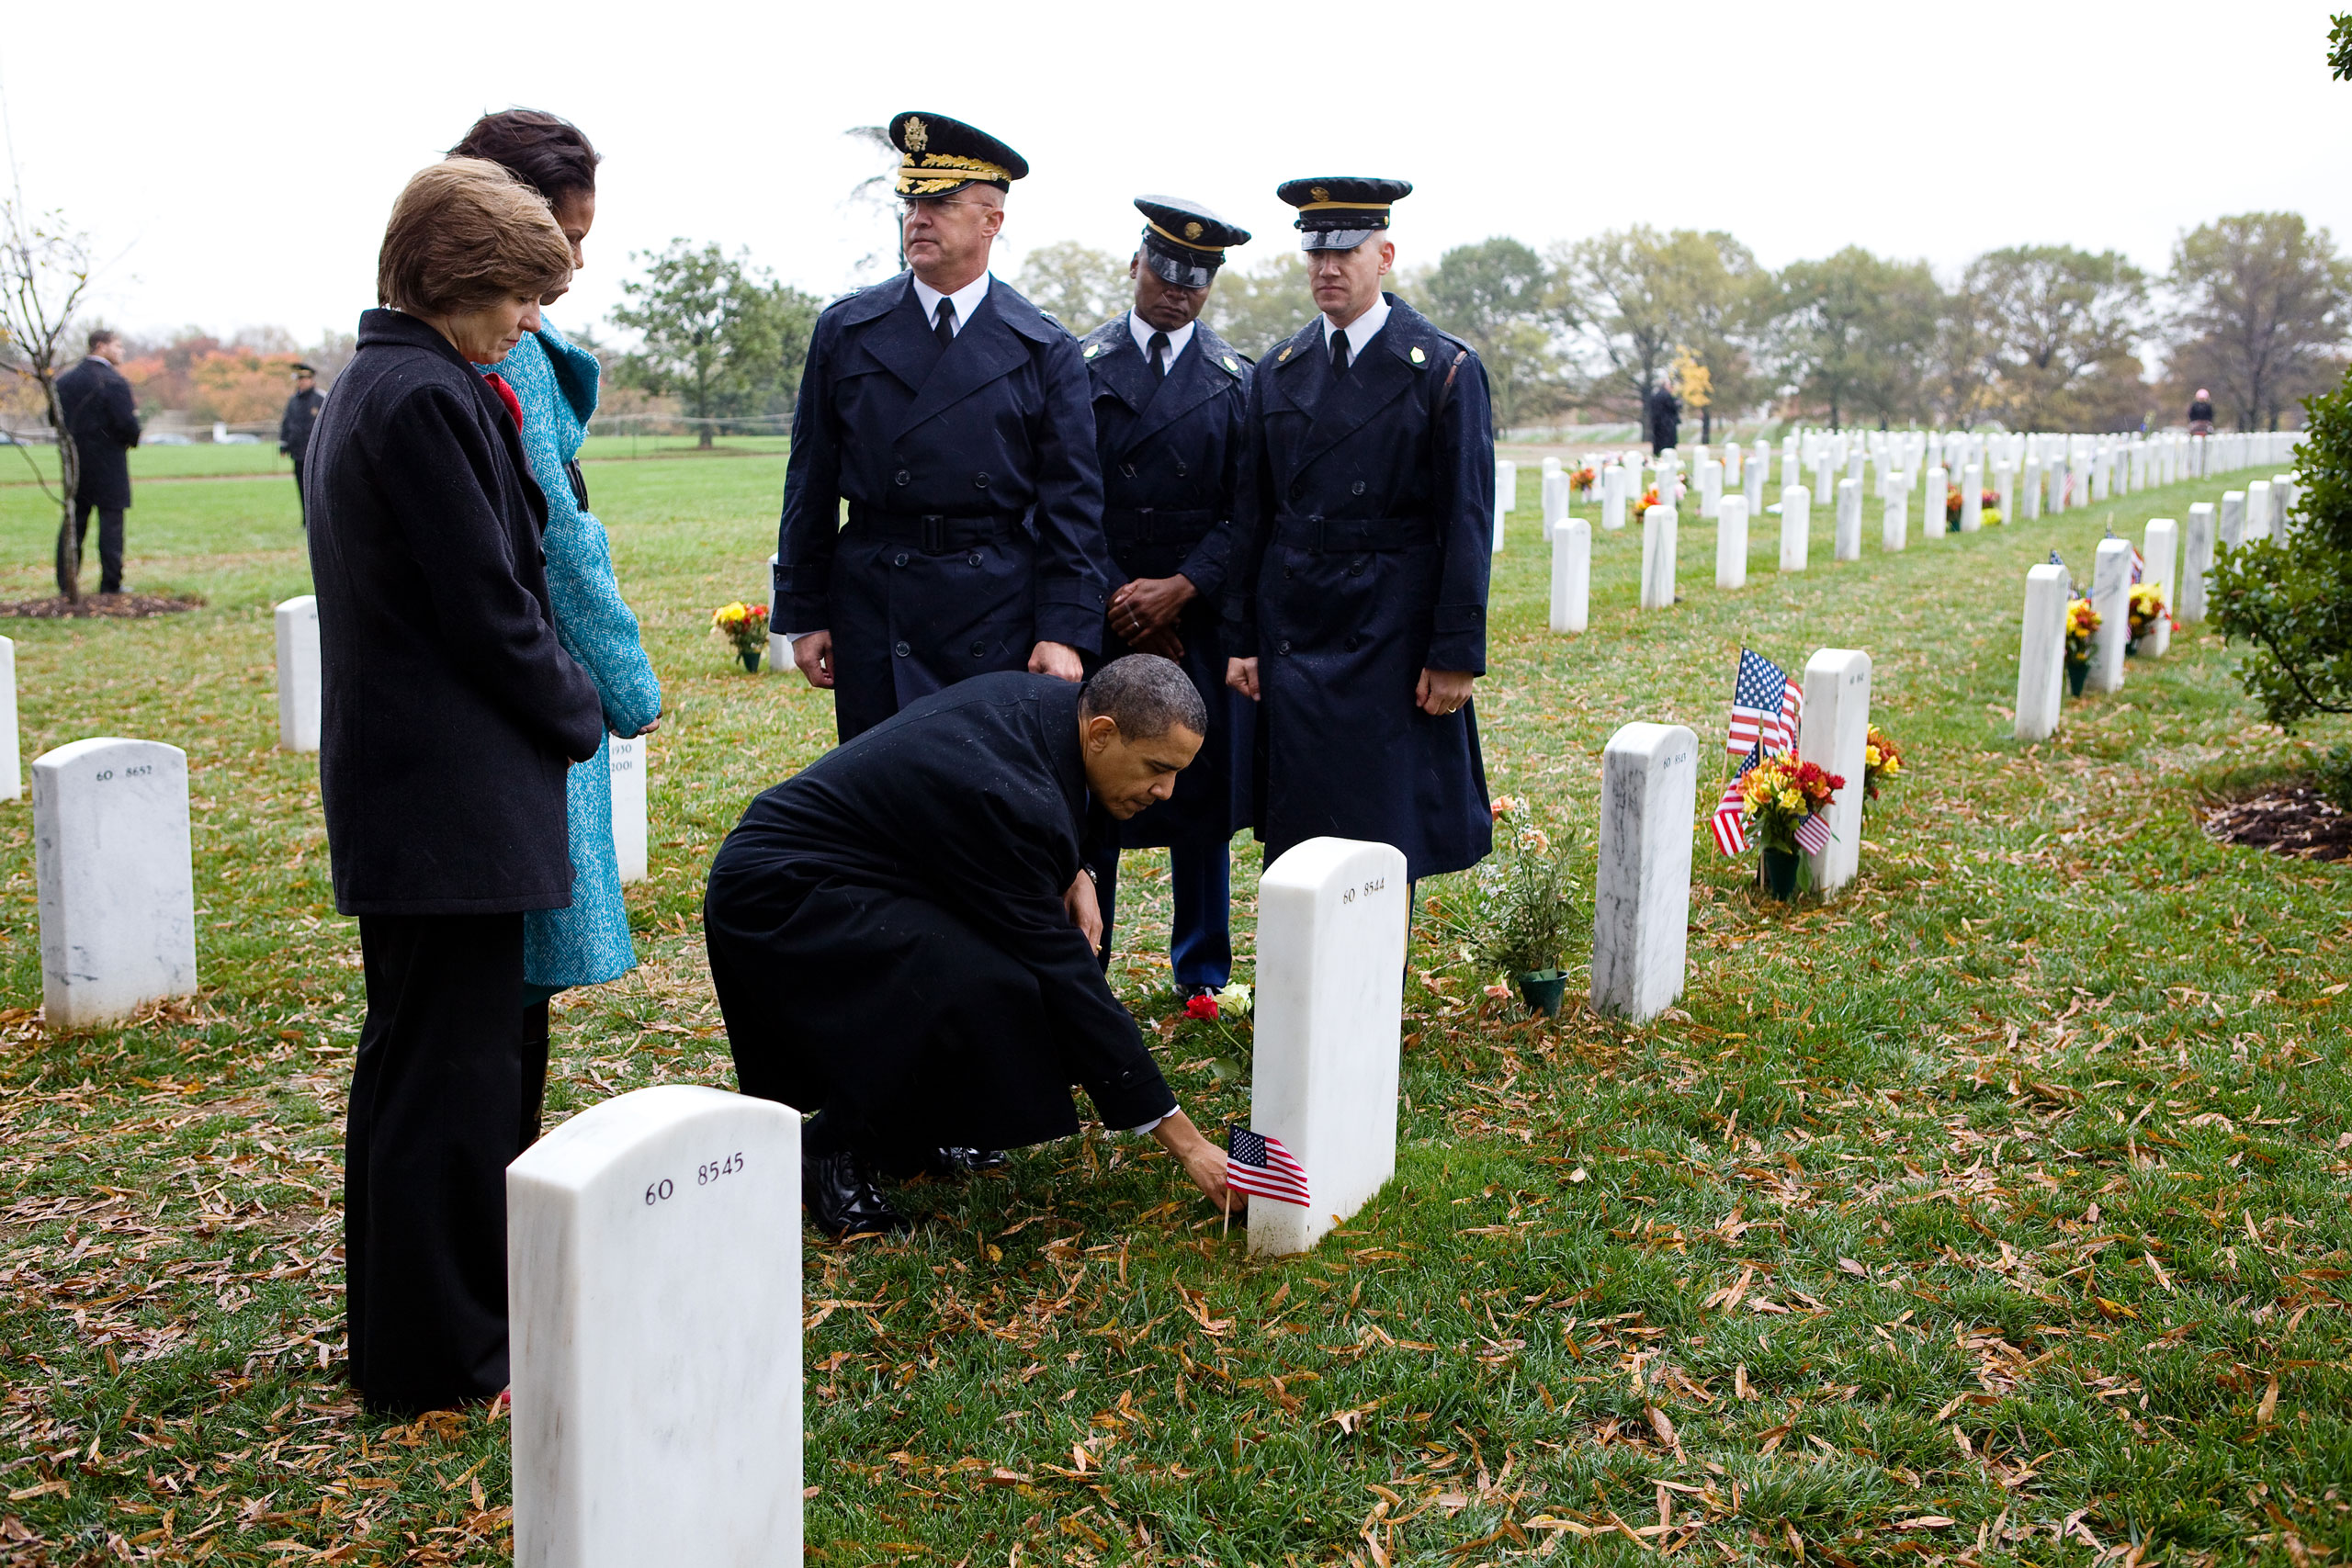 """""""He was at Arlington National Cemetery for Veterans Day, and after his remarks, made an impromptu stop at Section 60, where troops from Afghanistan and Iraq are buried. He paused to leave a Presidential coin in front of the tombstone for 19-year-old Medal of Honor recipient Specialist Ross McGinnis. Later that same day, the President held a briefing in the Situation Room on Afghanistan,  Nov. 11, 2009."""